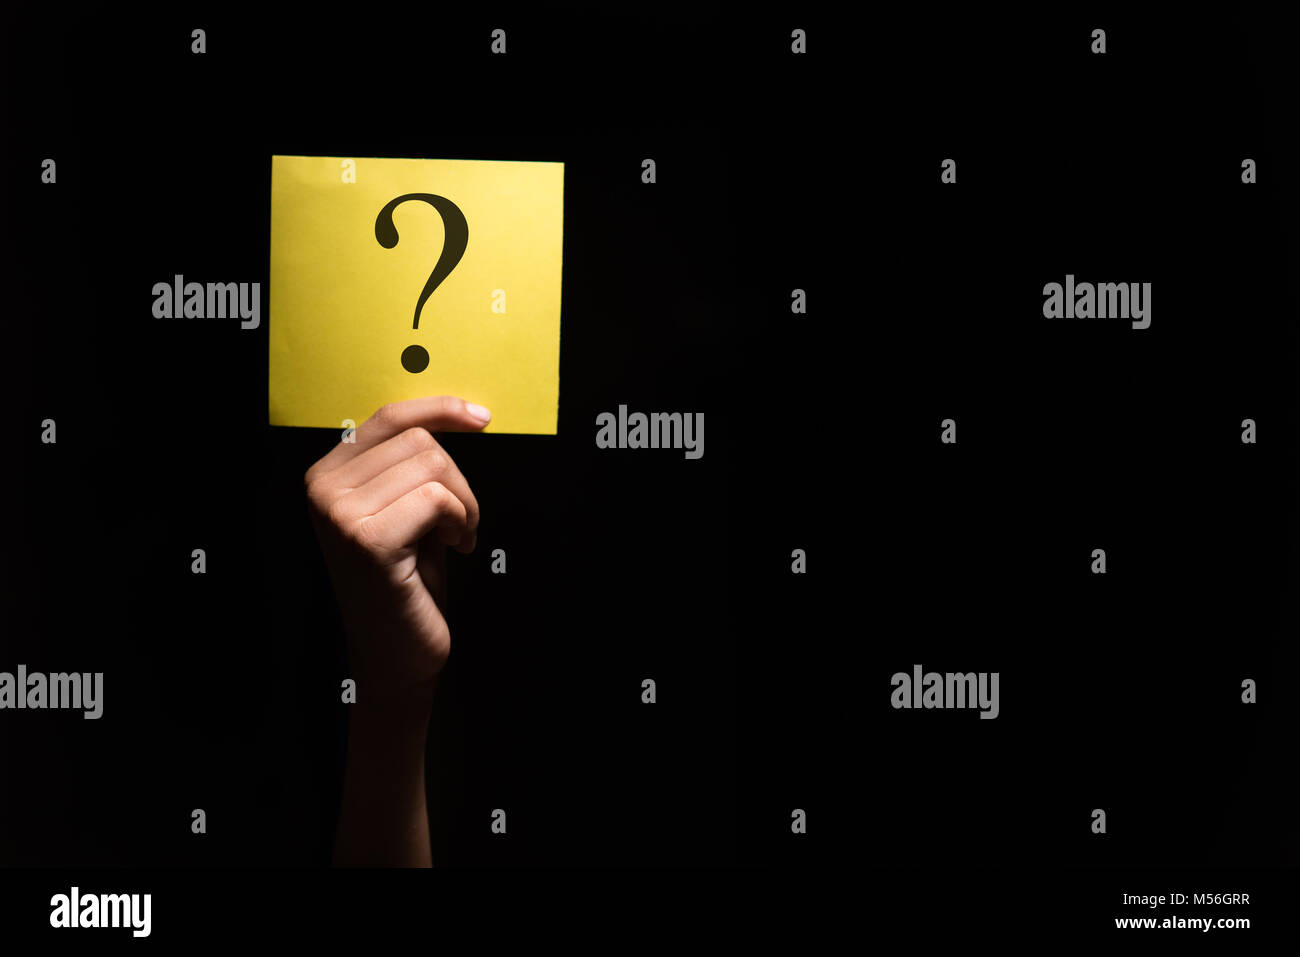 hand holding a yellow paper with question mark in a dark background - Stock Image